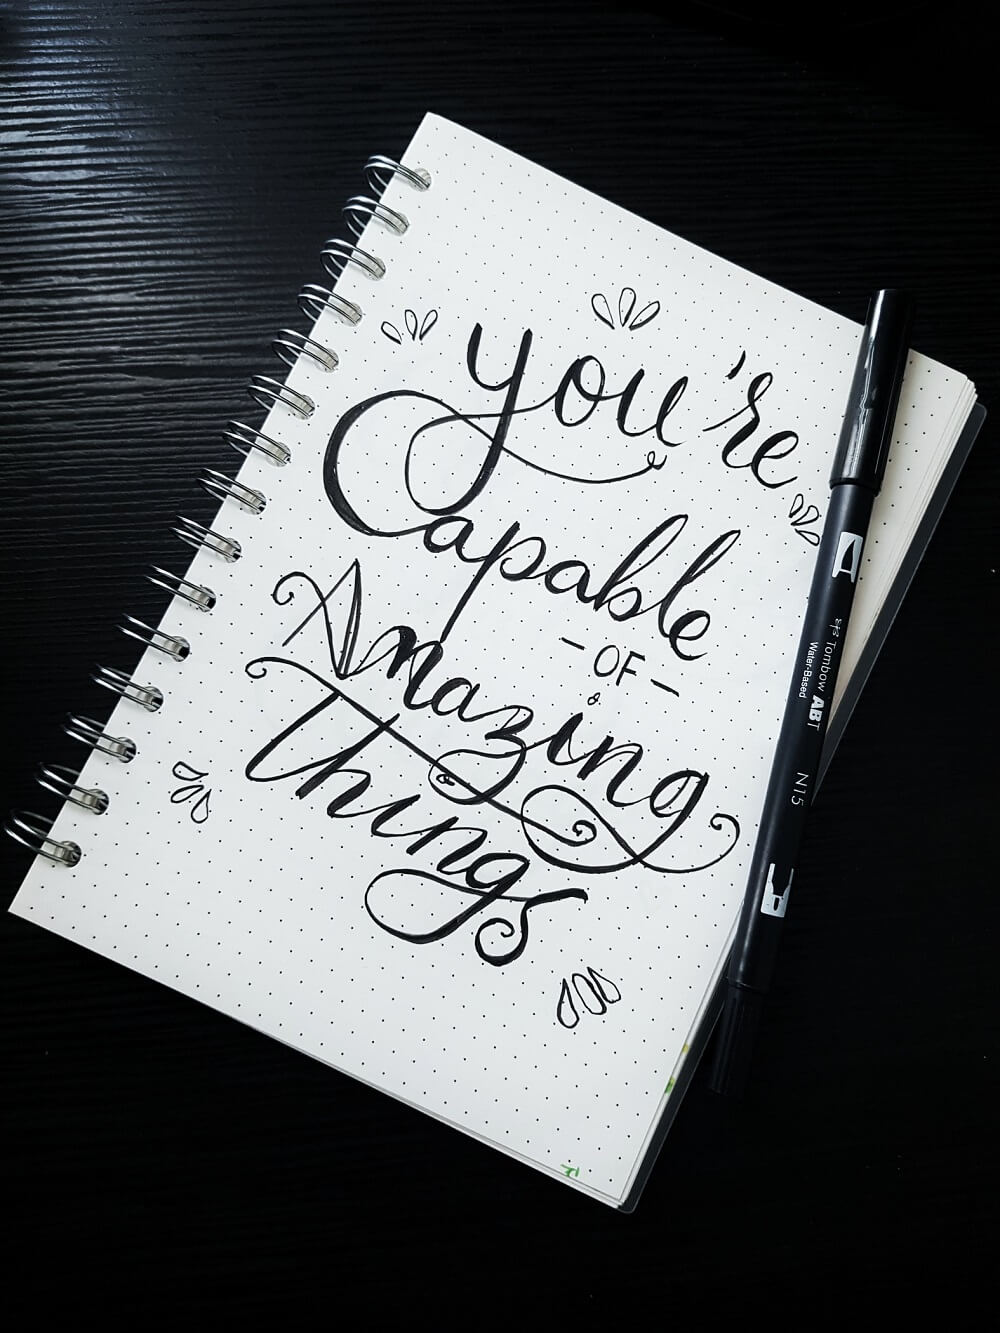 20 Most Inspirational Bullet Journal Quotes You'll Love   Bujo Babe